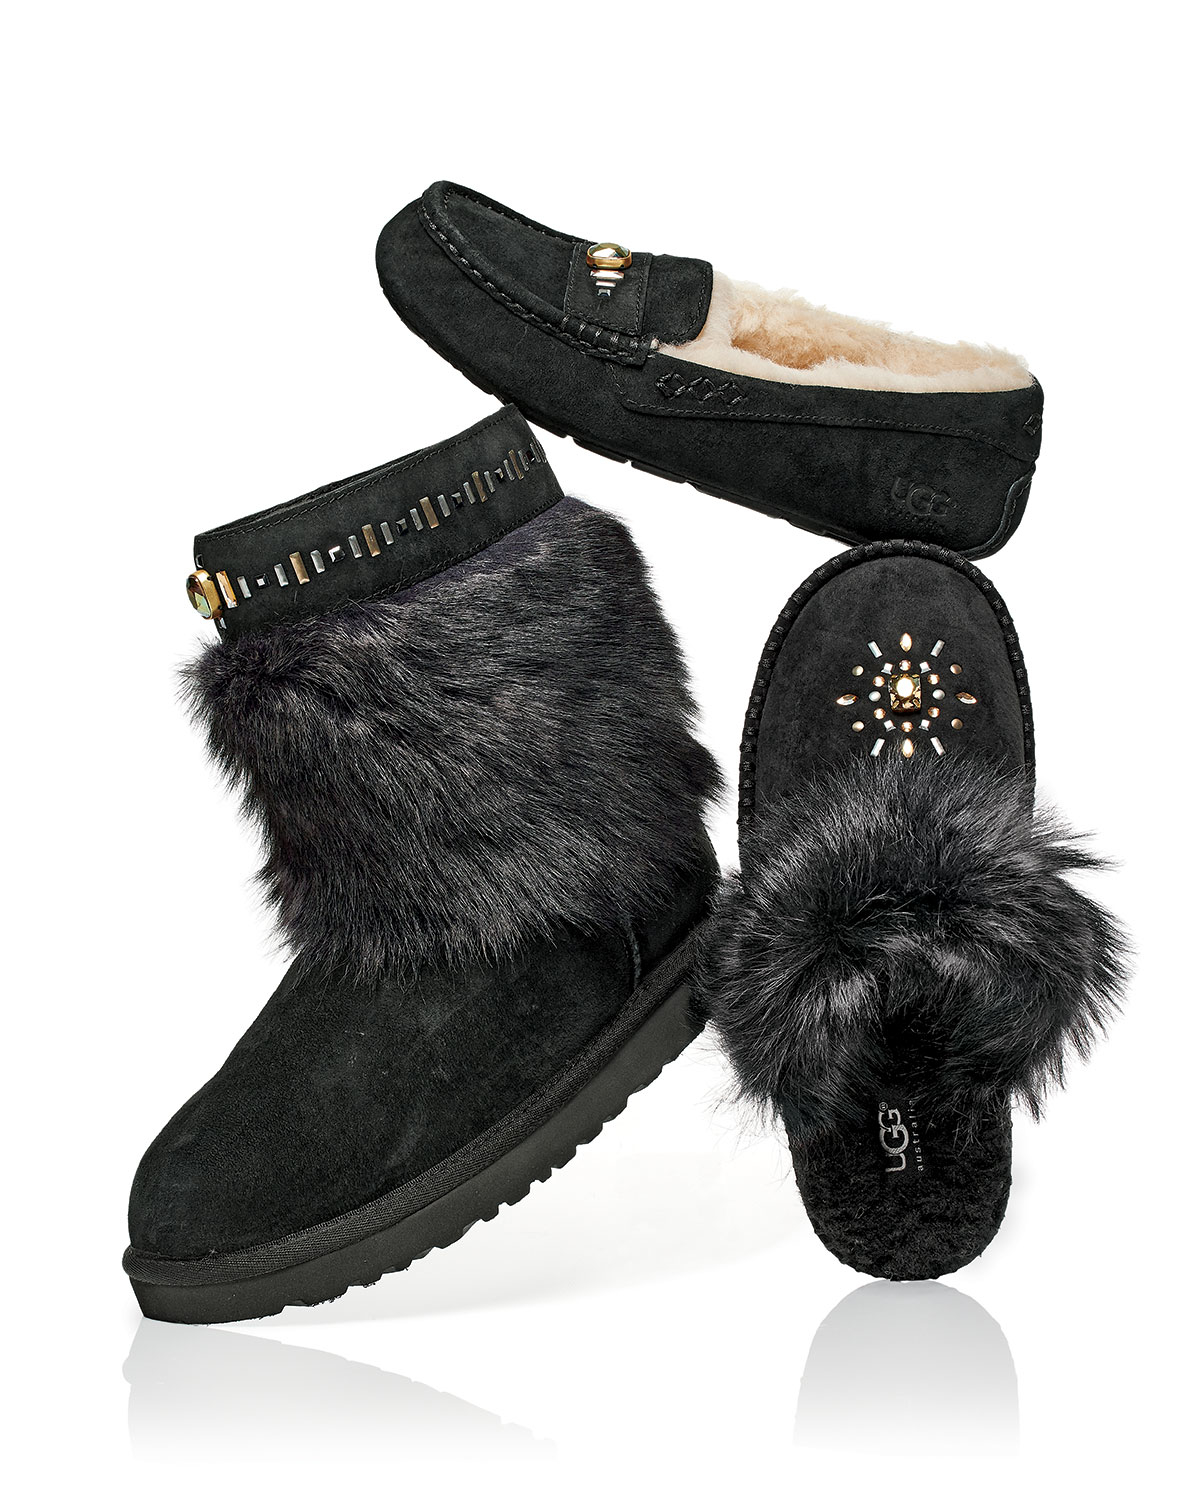 cfc6928d2a6 UGG Black Ansley Crystal Shearling Slippers